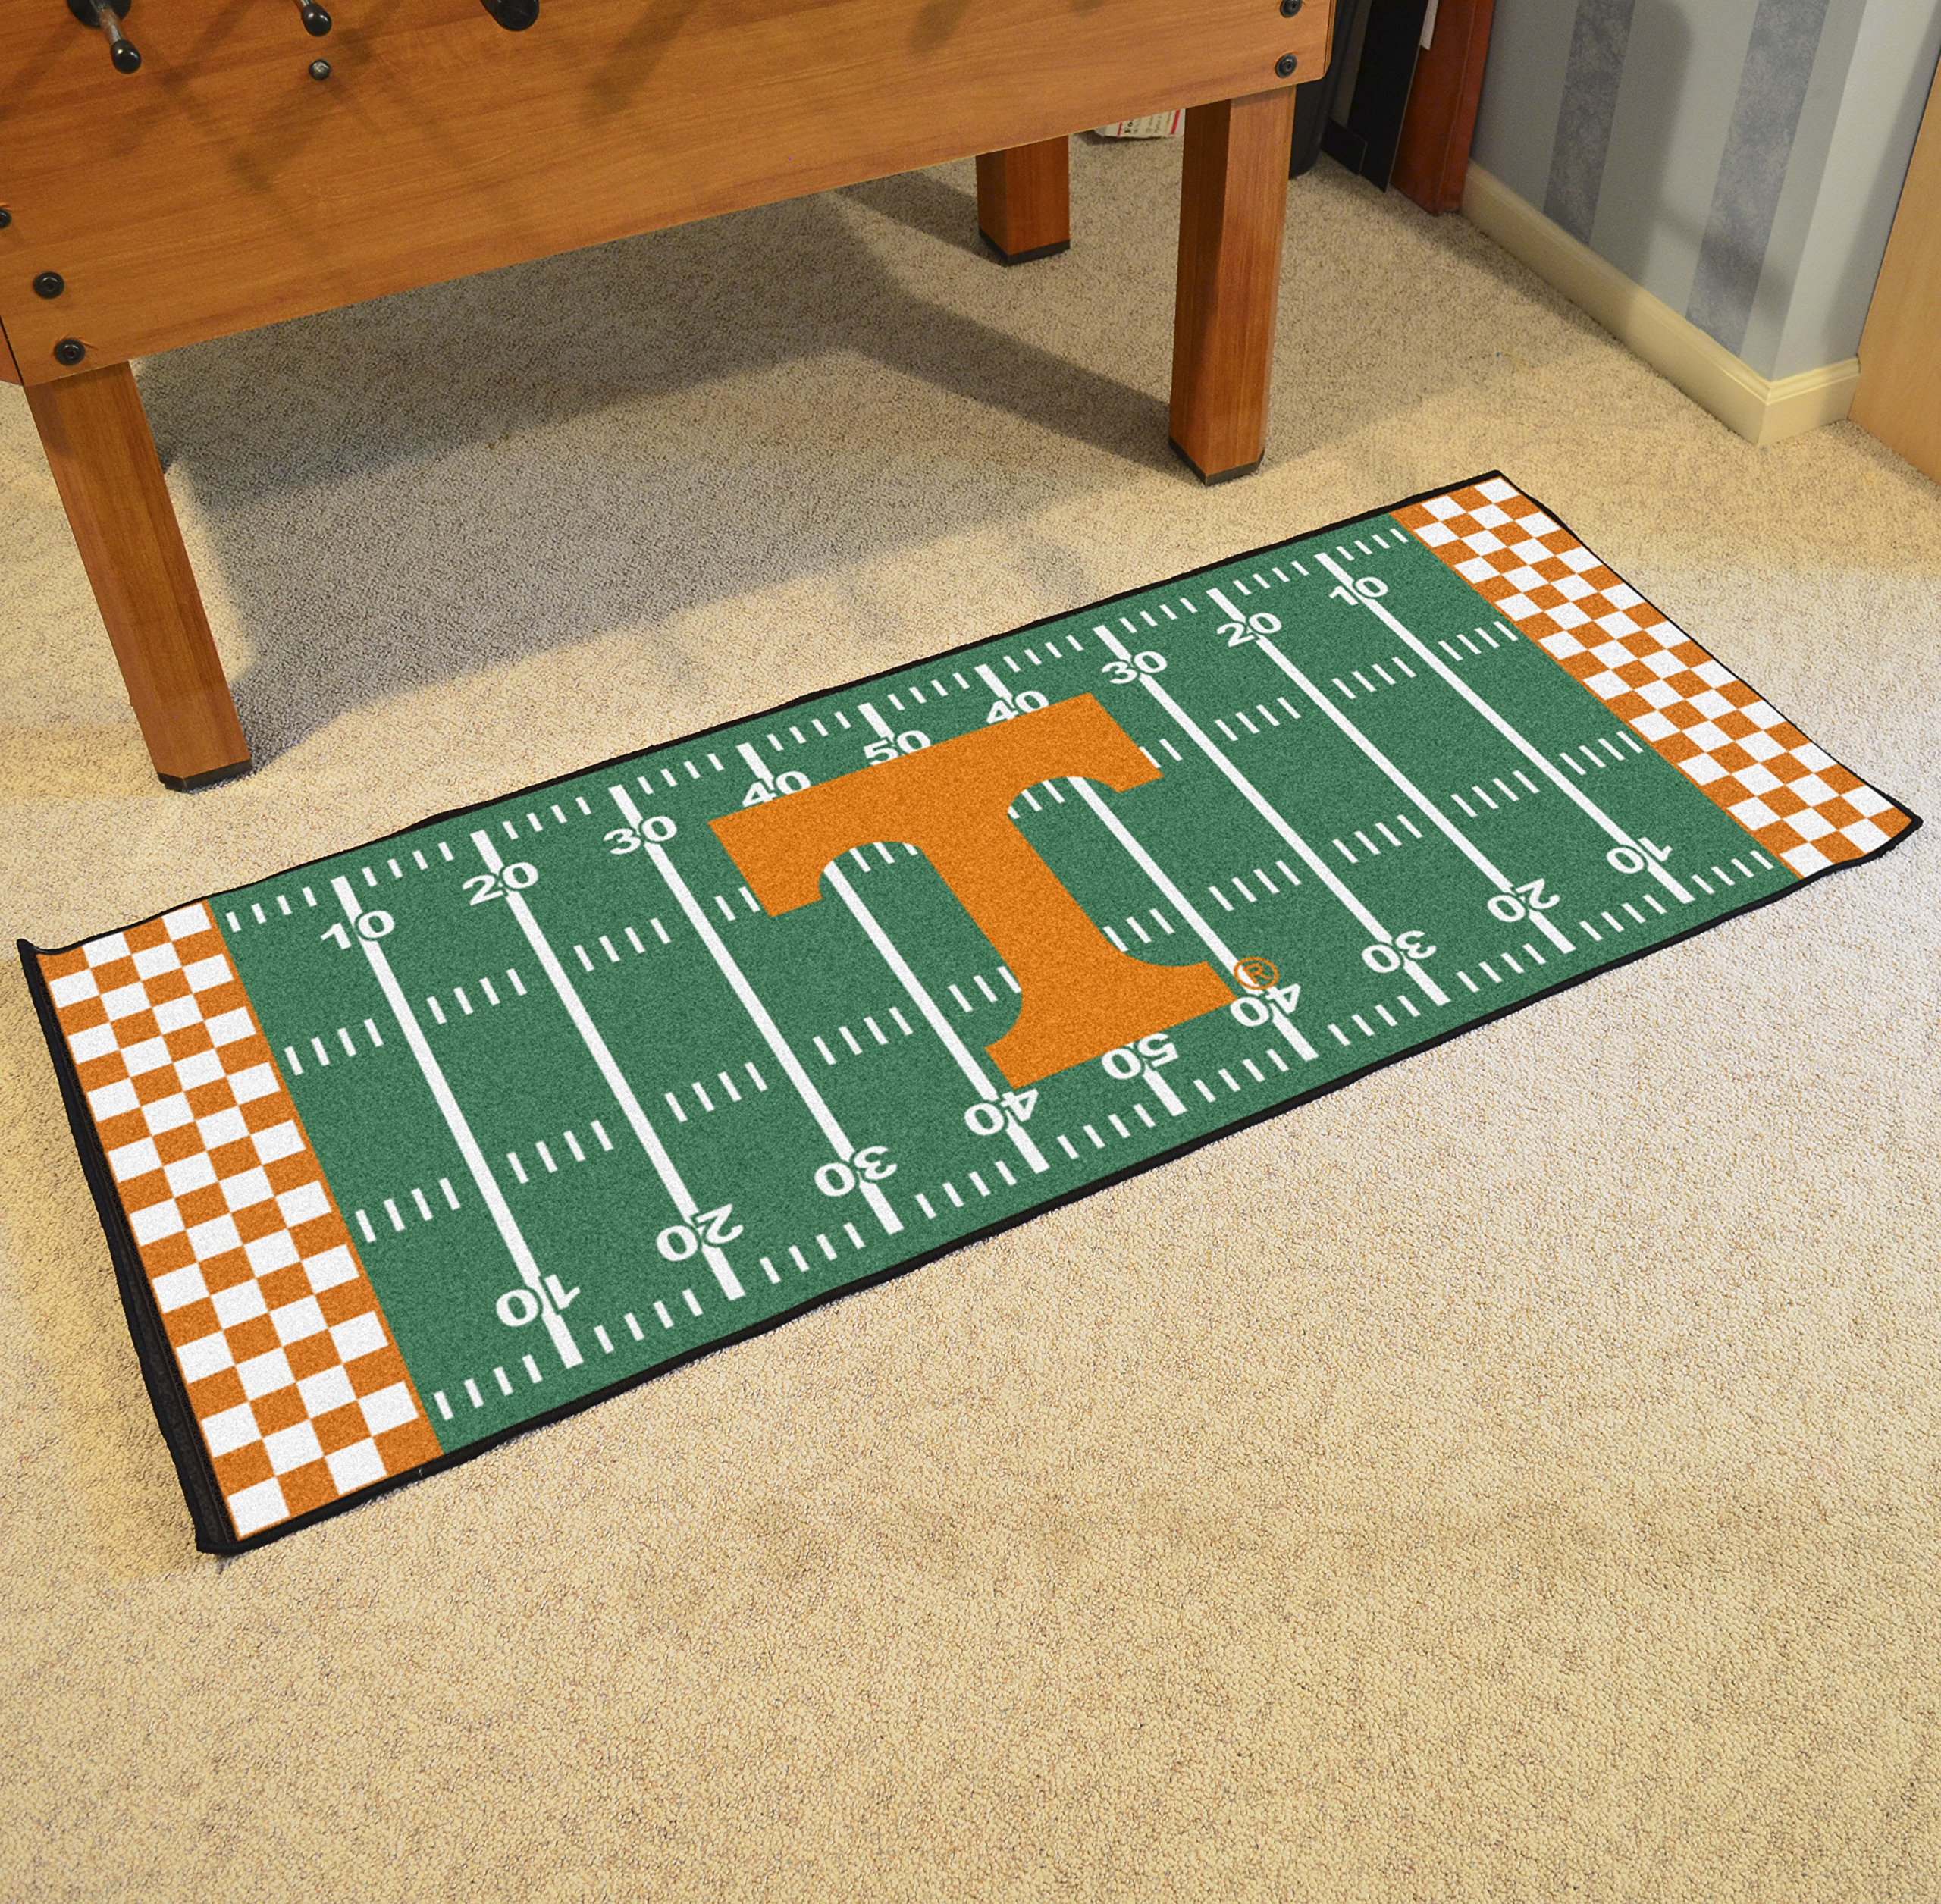 NCAA University of Tennessee Volunteers Football Field Runner Mat Area Rug by Unknown (Image #2)